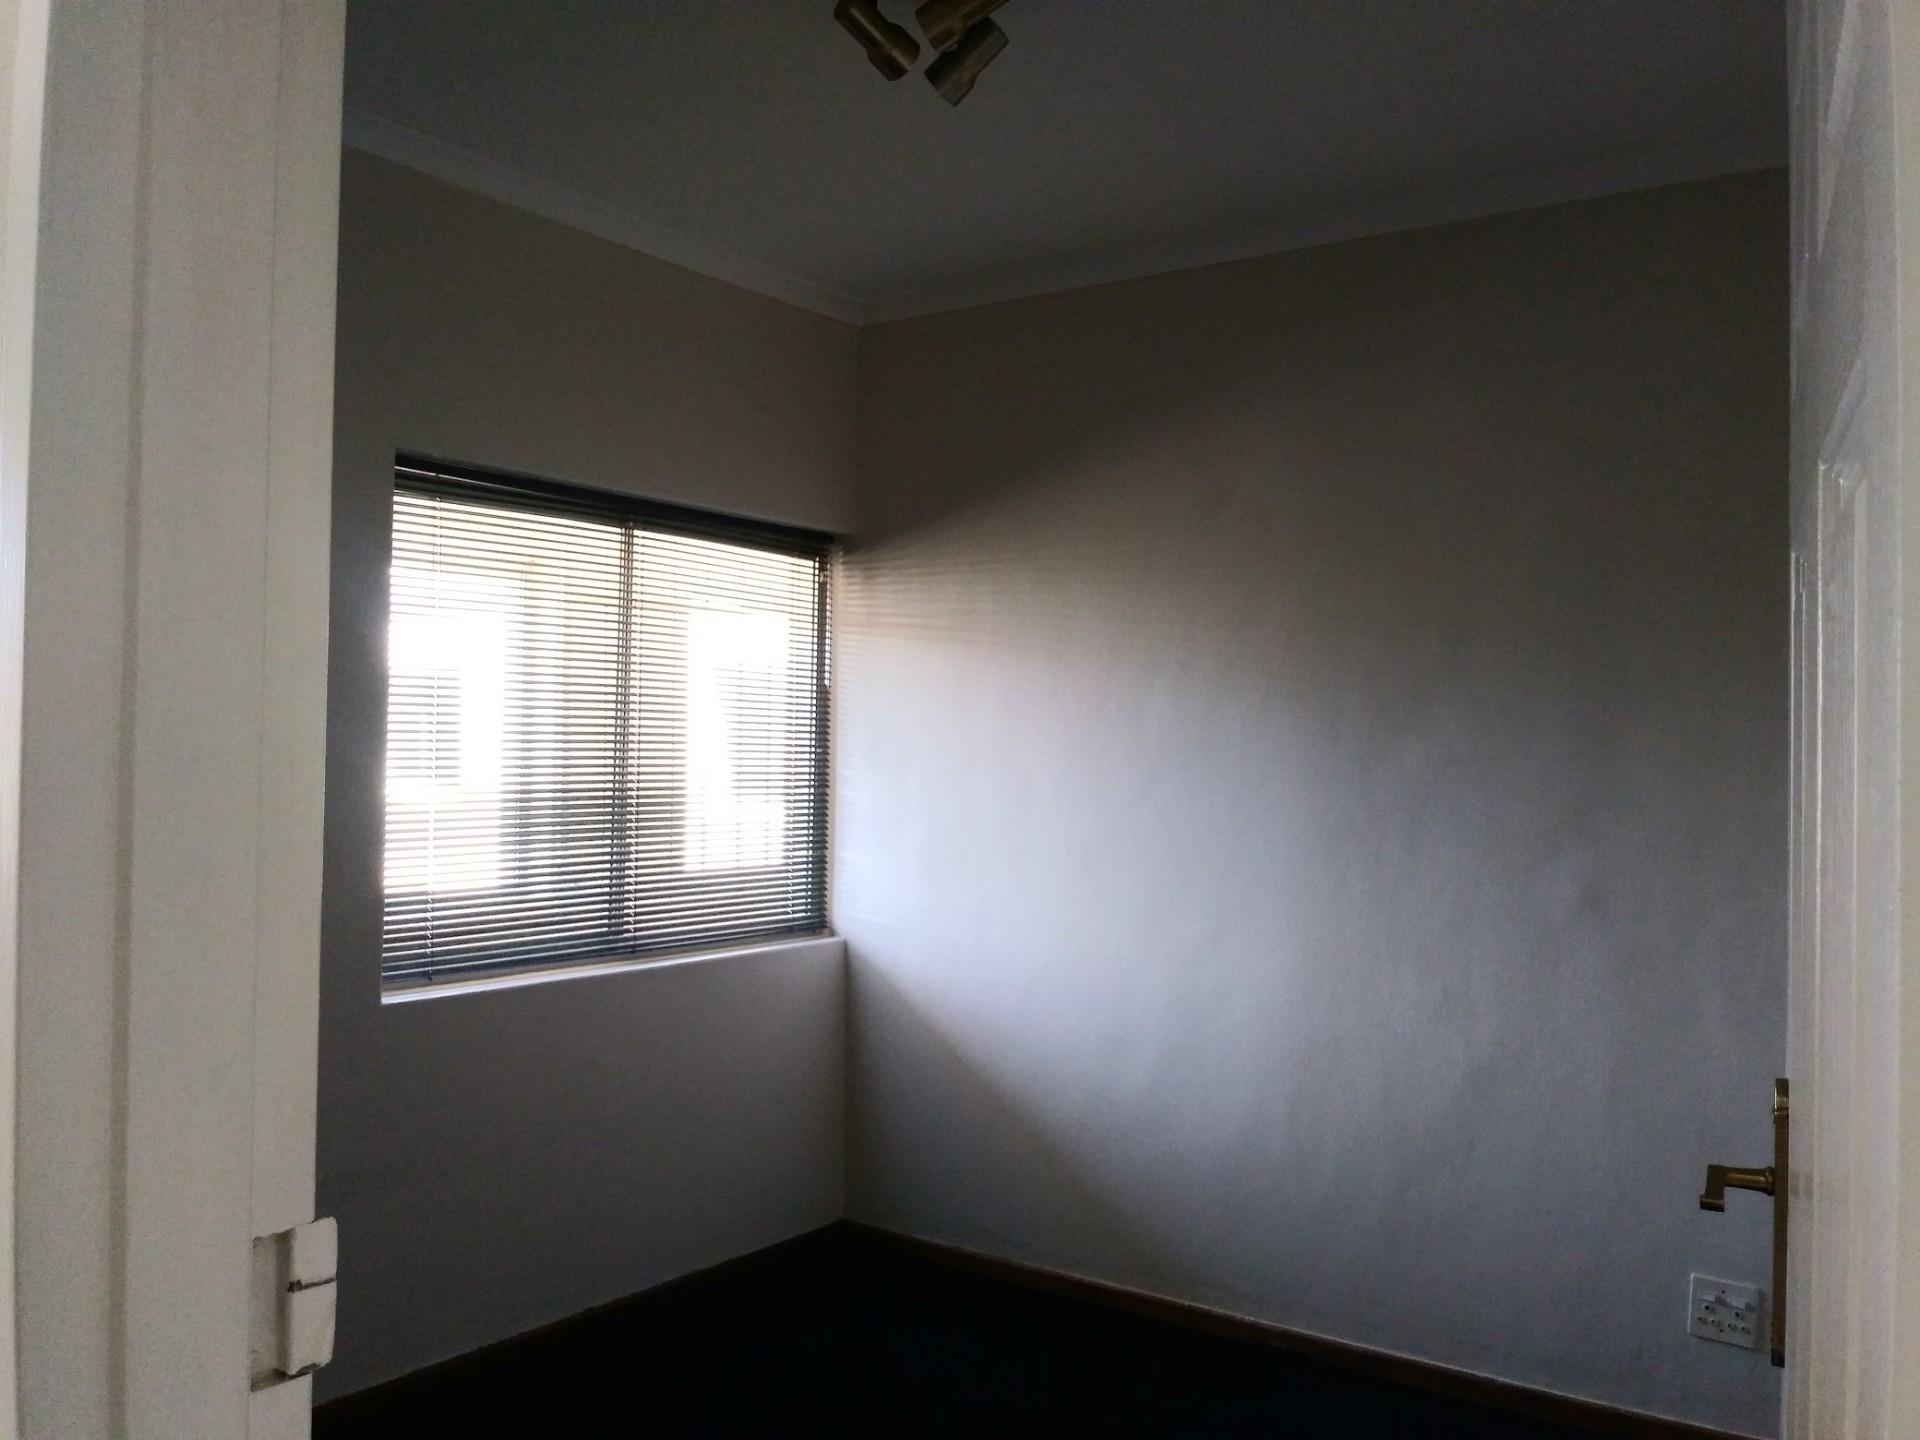 3 Bedroom Apartment / Flat To Rent in Durbanville Central